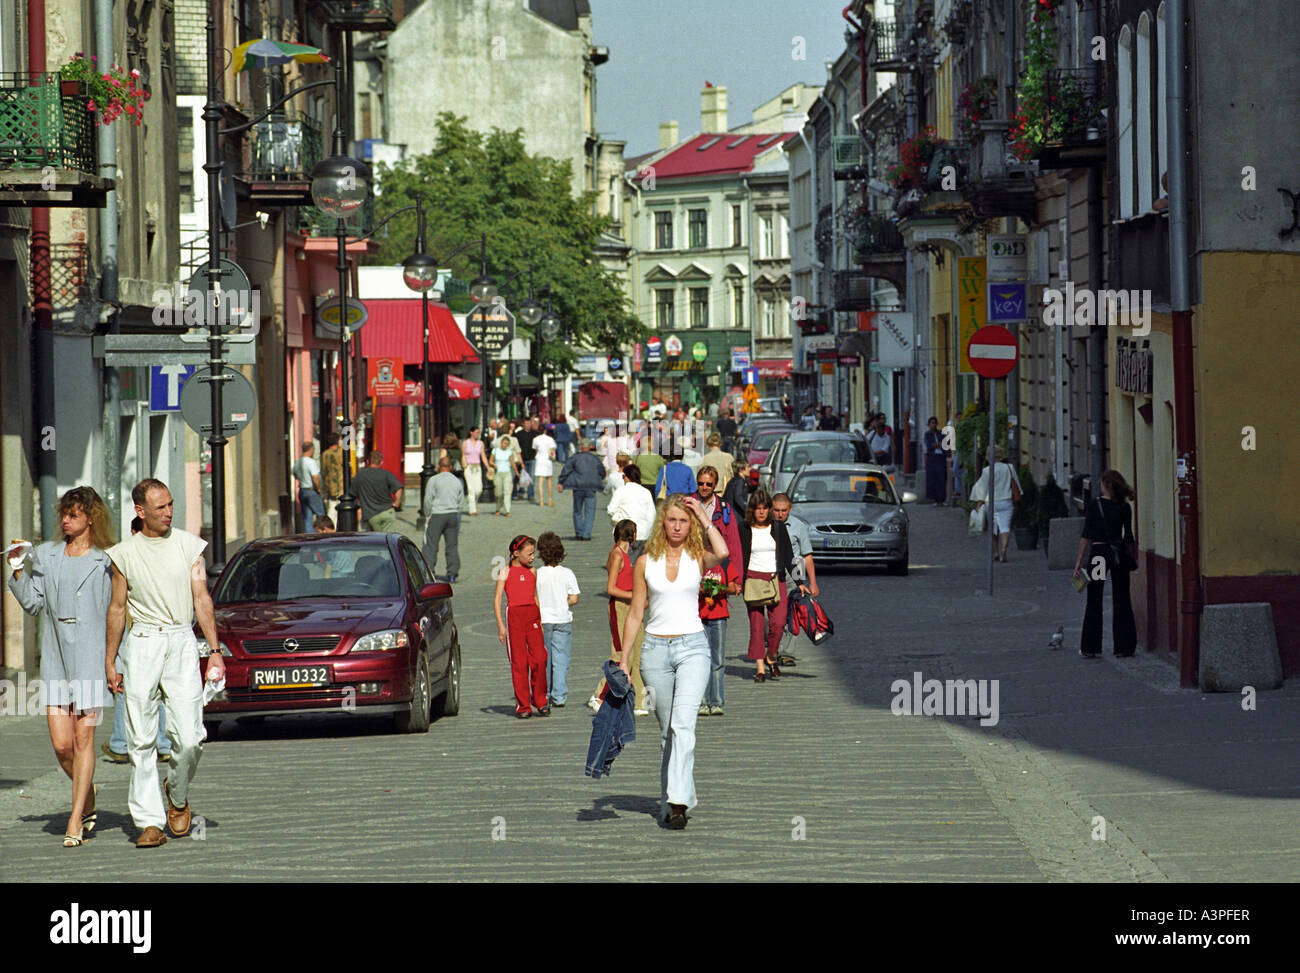 People walking in the old town of Przemysl, Poland Stock Photo